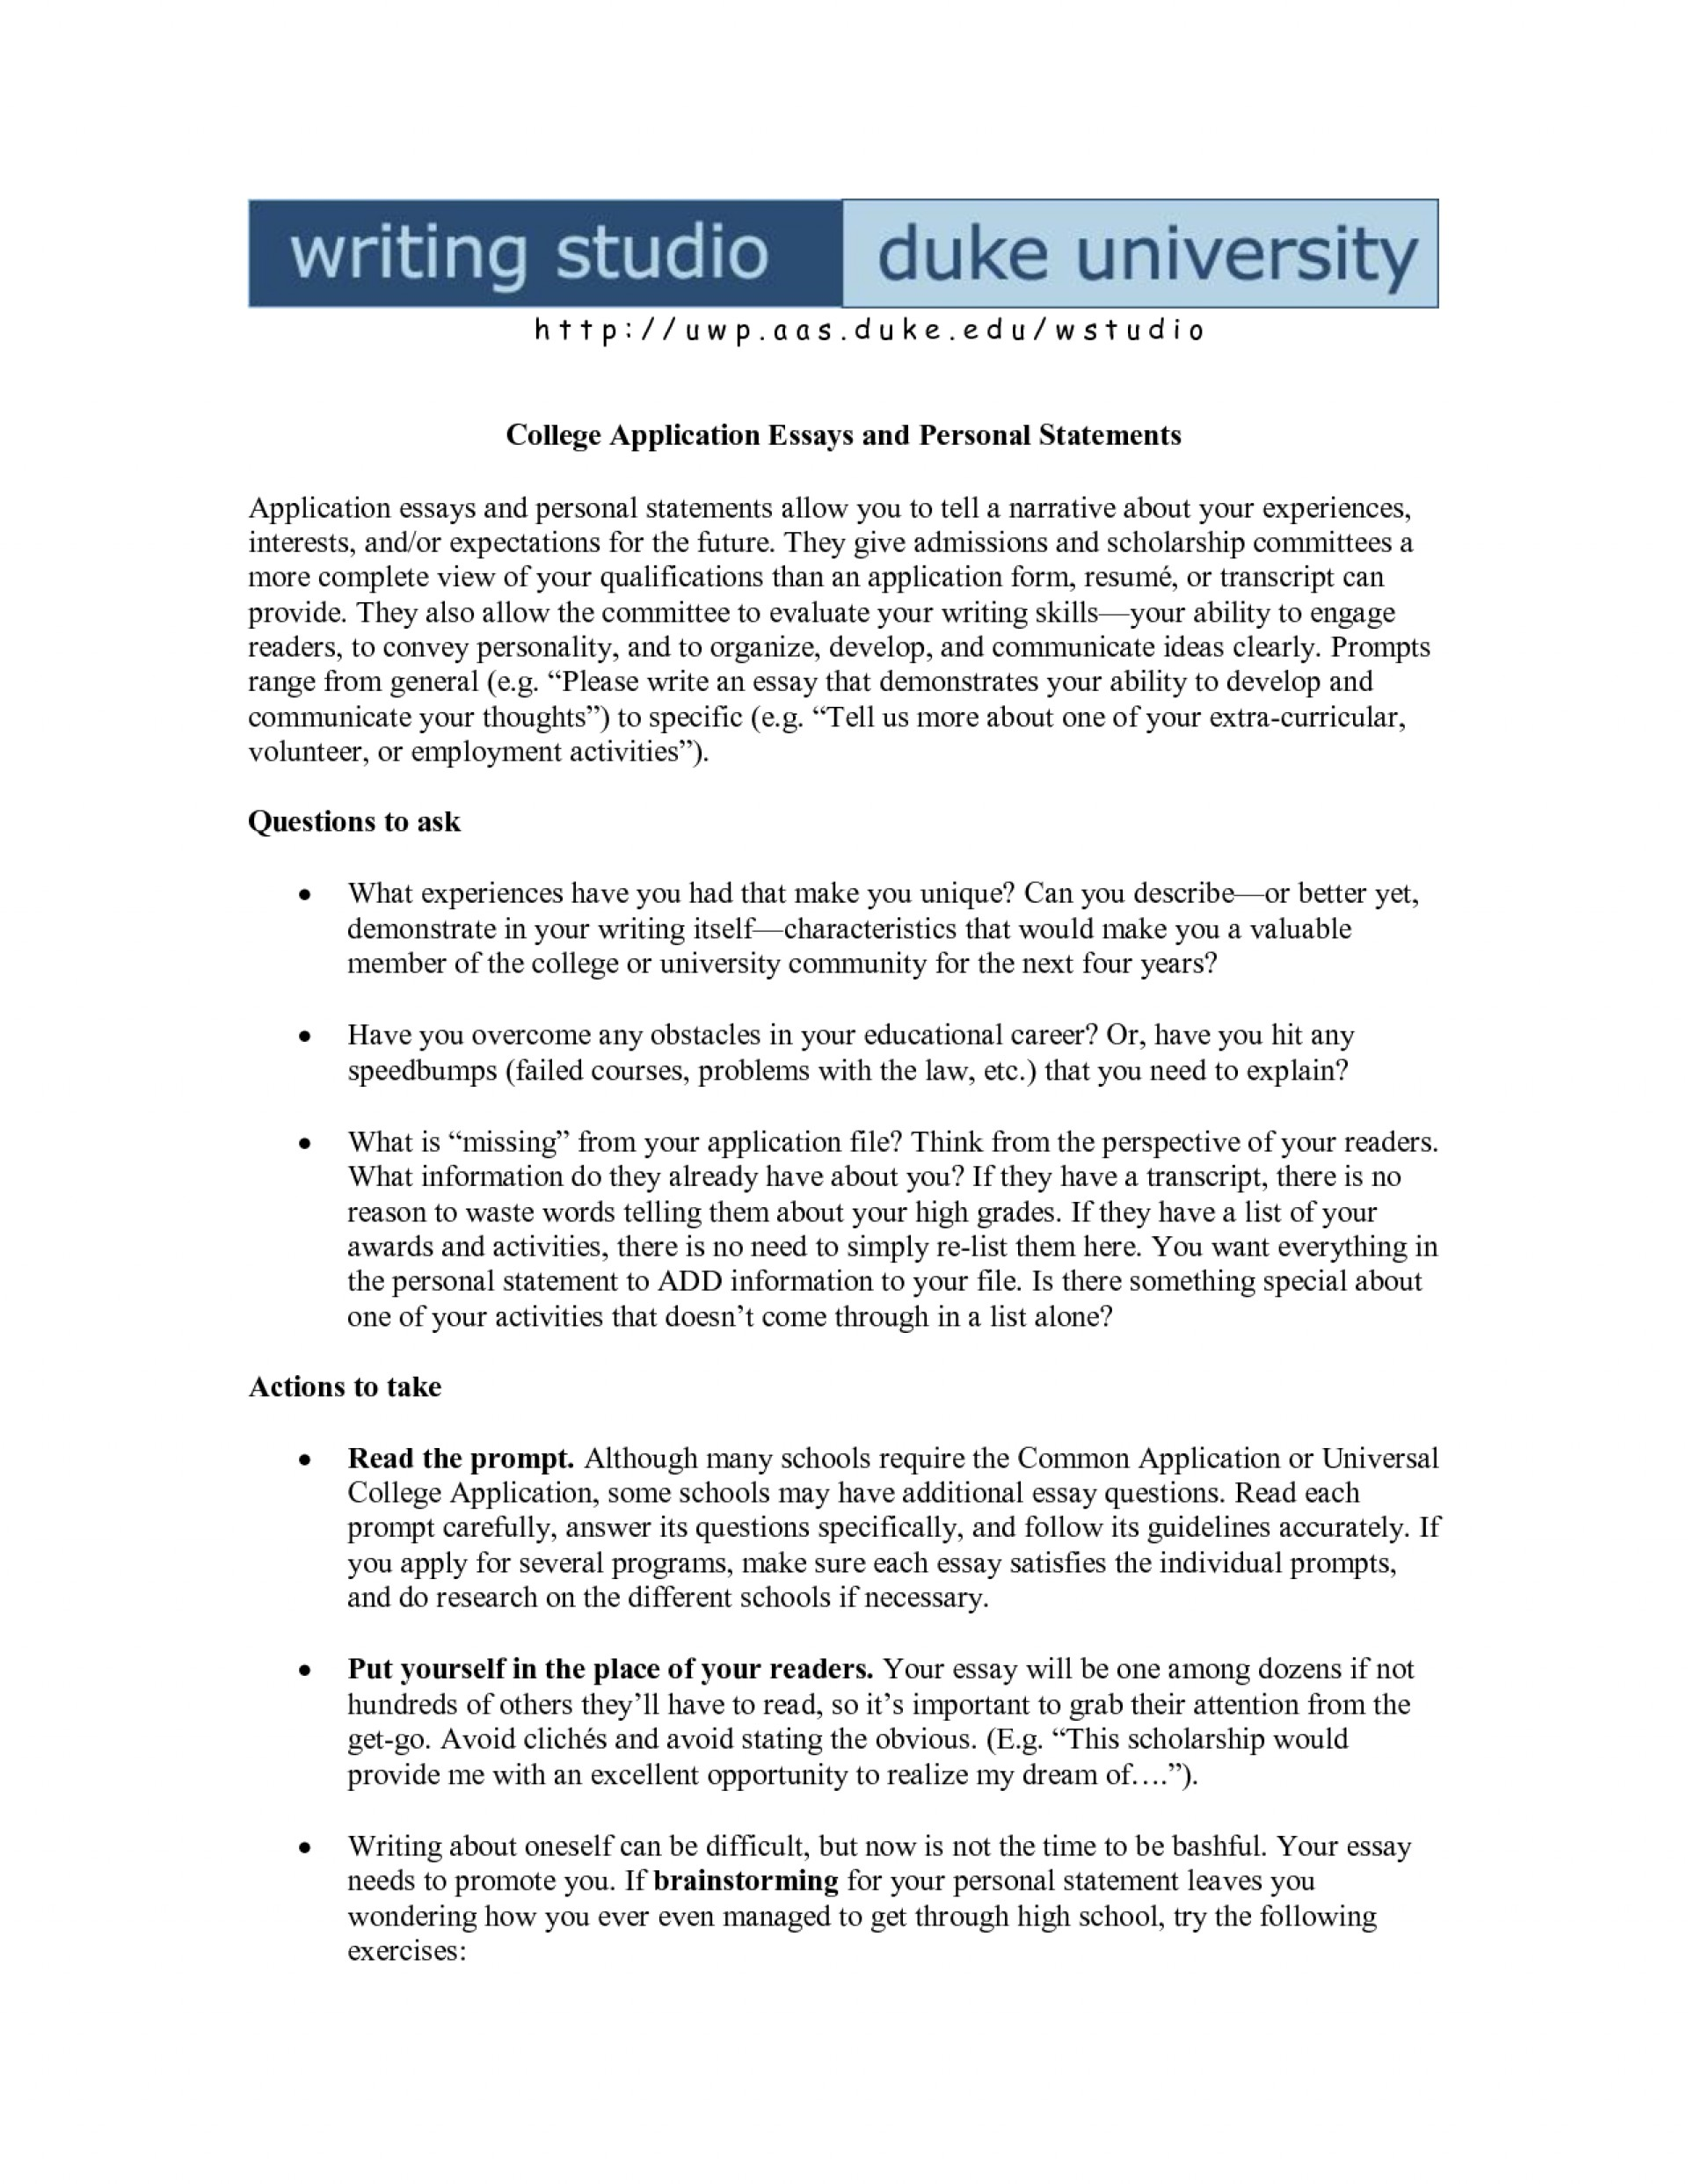 003 Uc Application Essay Fuvq4 College Questions Common App Staggering 2020 2017-18 1920